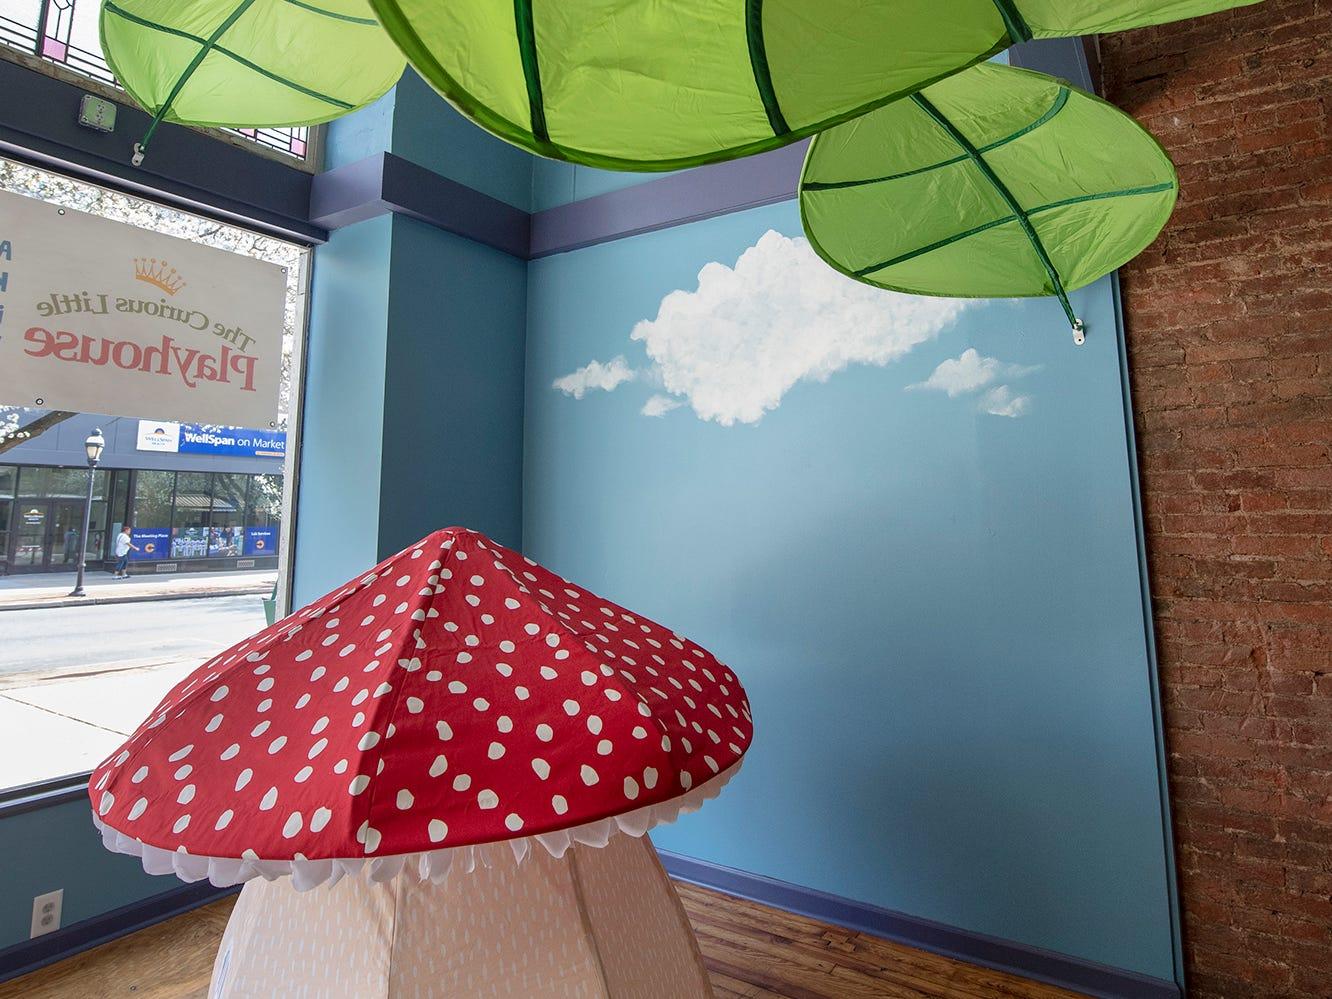 A mushroom playhouse and giant leaves decorate the display window of The Curious Little Playhouse, located at 41 West Market Street in York.